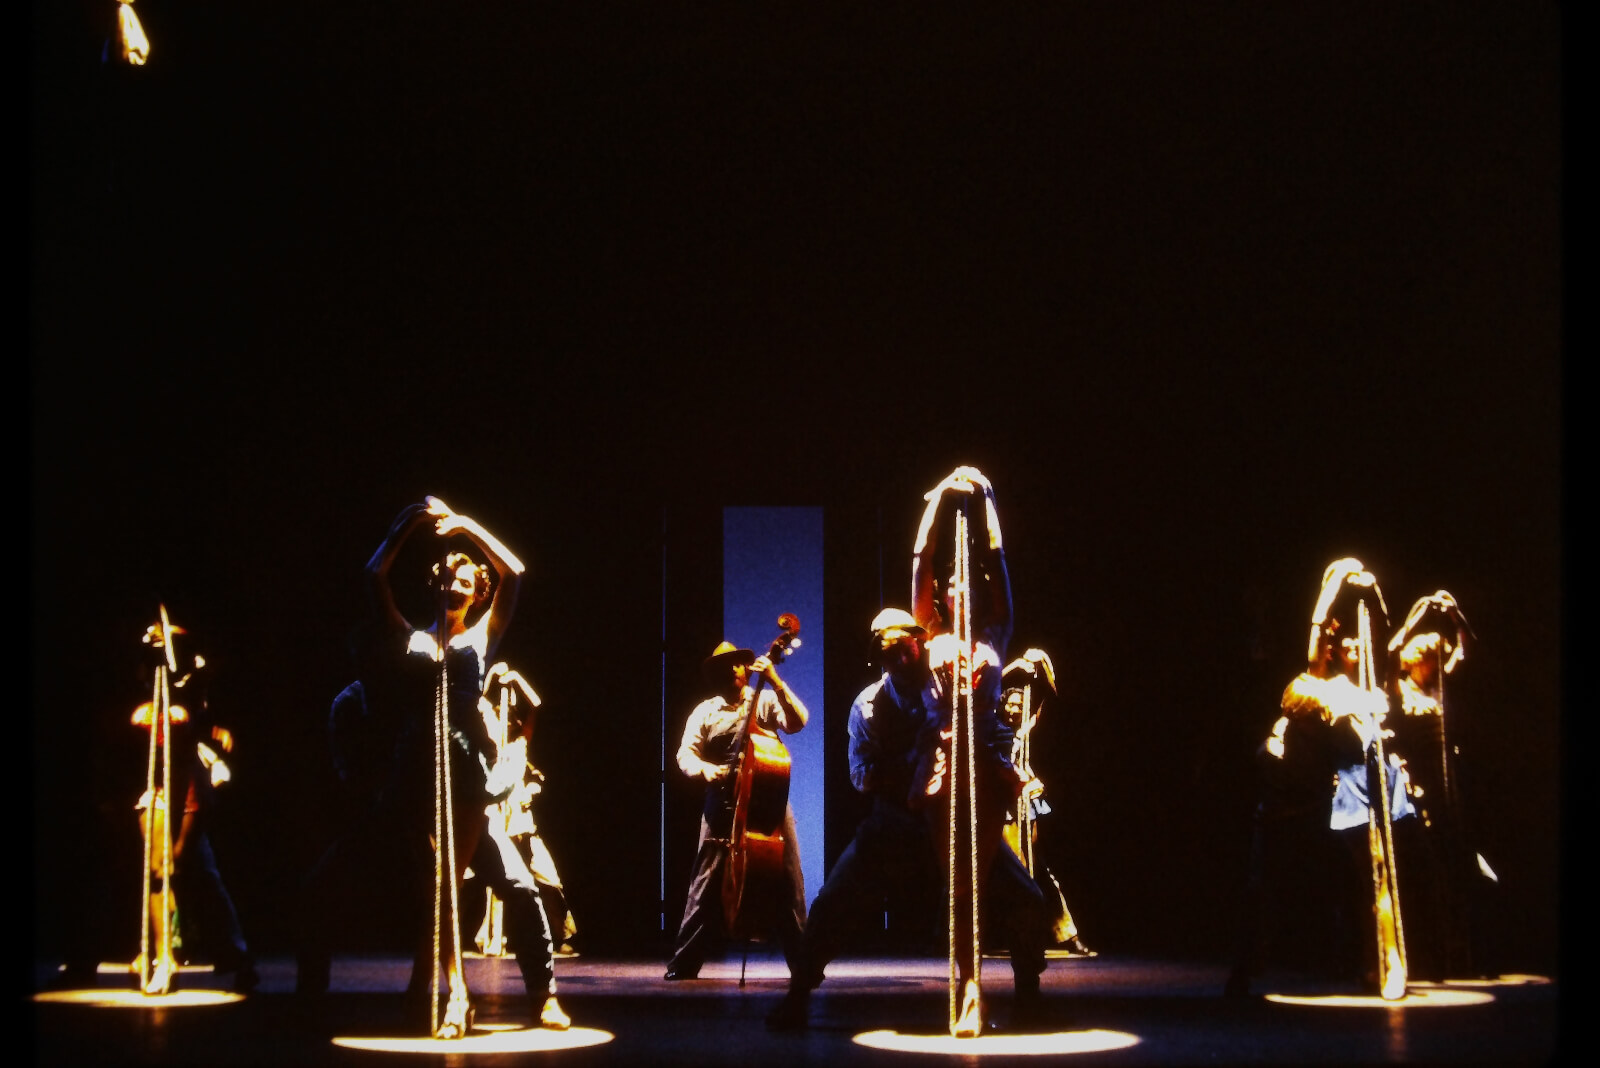 """Full Company of """"Slap That Bass"""" from the Original Broadway Production. 4 Women are standing over a folded rope while 4 men play the rope like a Bass: which is being played center stage. All are in sharp spotlights from above."""